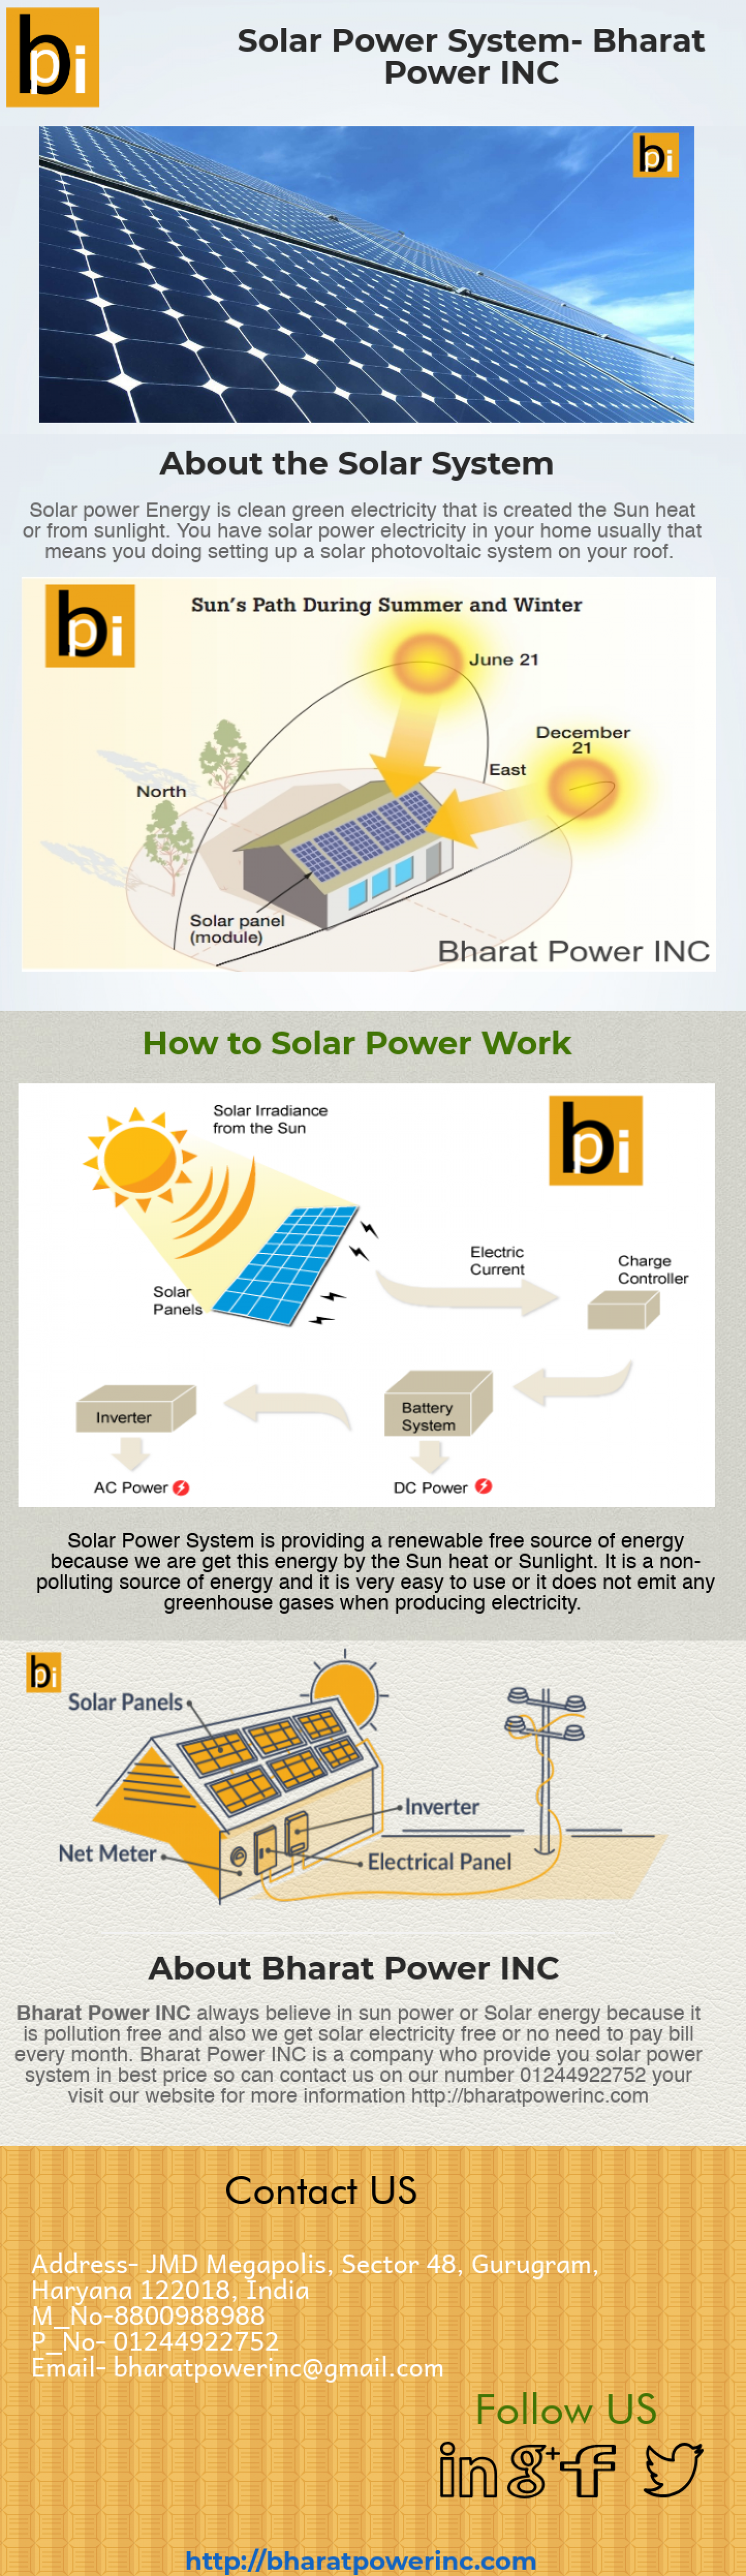 Solar Power System- Bharat Power INC Infographic